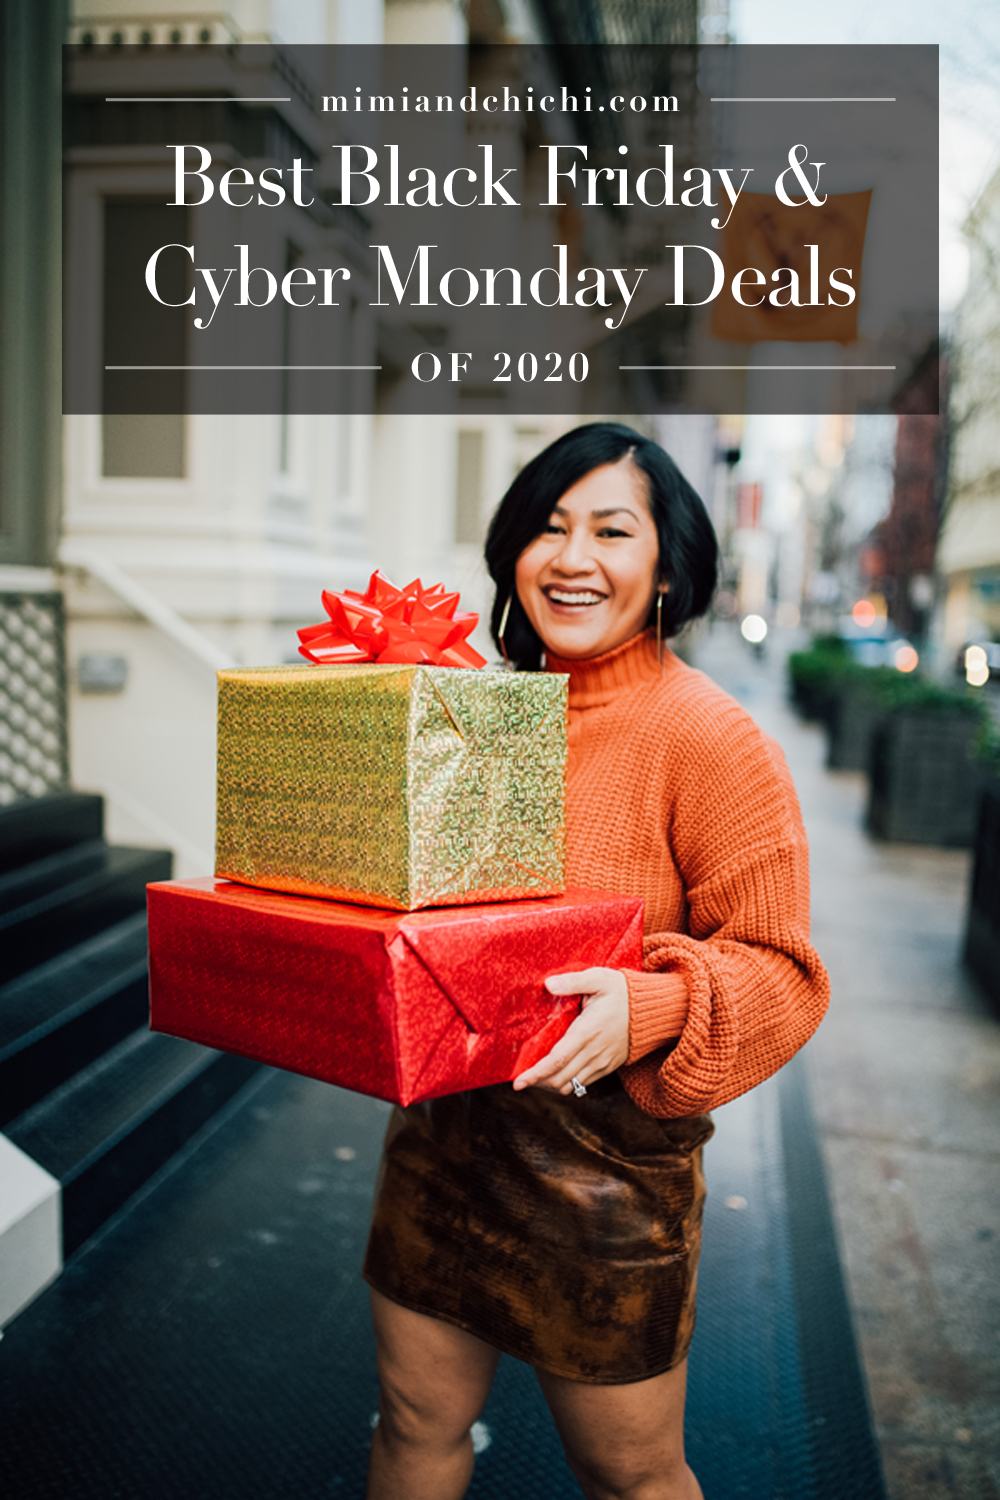 2020's Black Friday and Cyber Monday deals